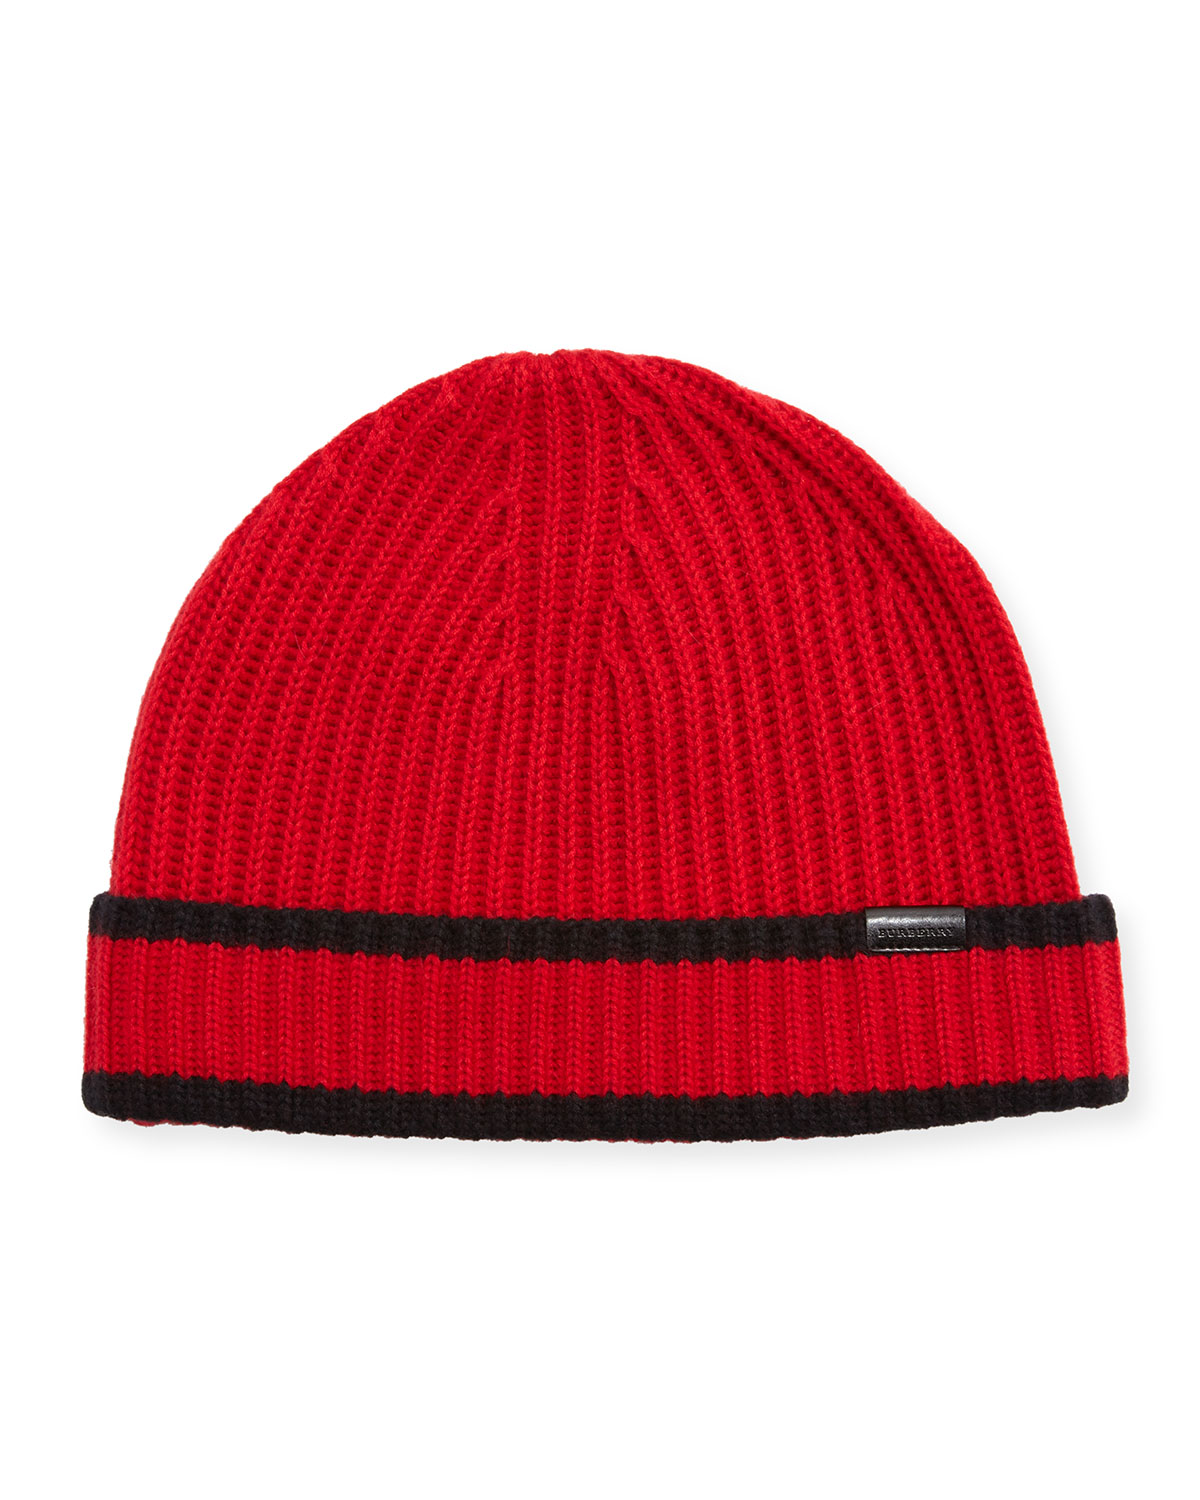 435dc6c5a7f Burberry Men s Ribbed Cashmere Beanie Hat